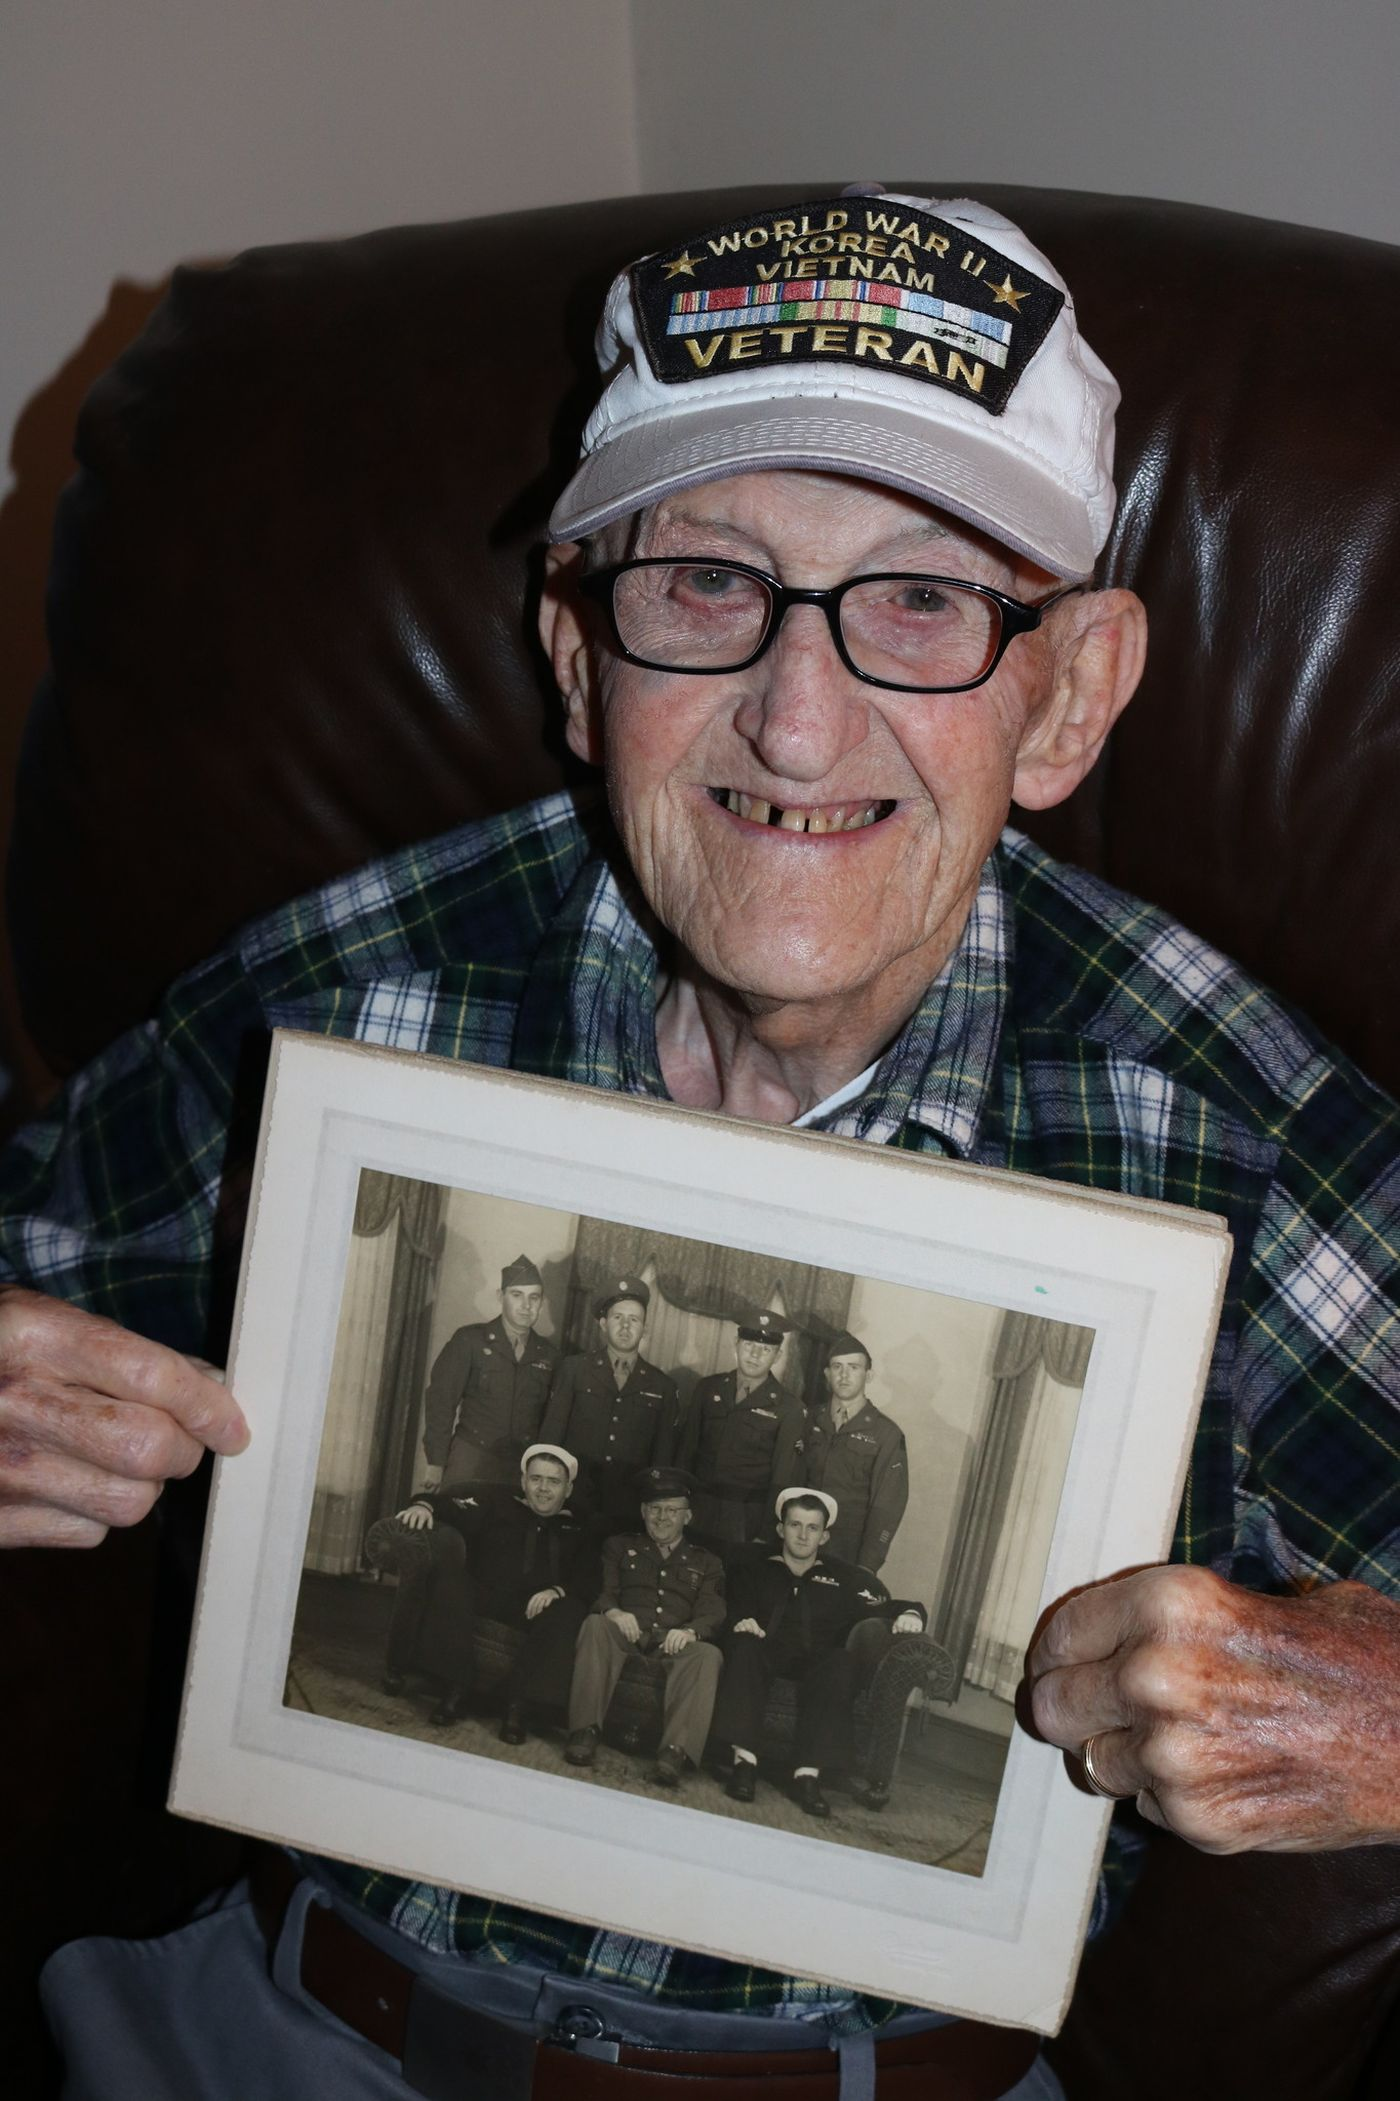 My dad, Andre Lussier, holds a photo of his brothers while wearing his hat